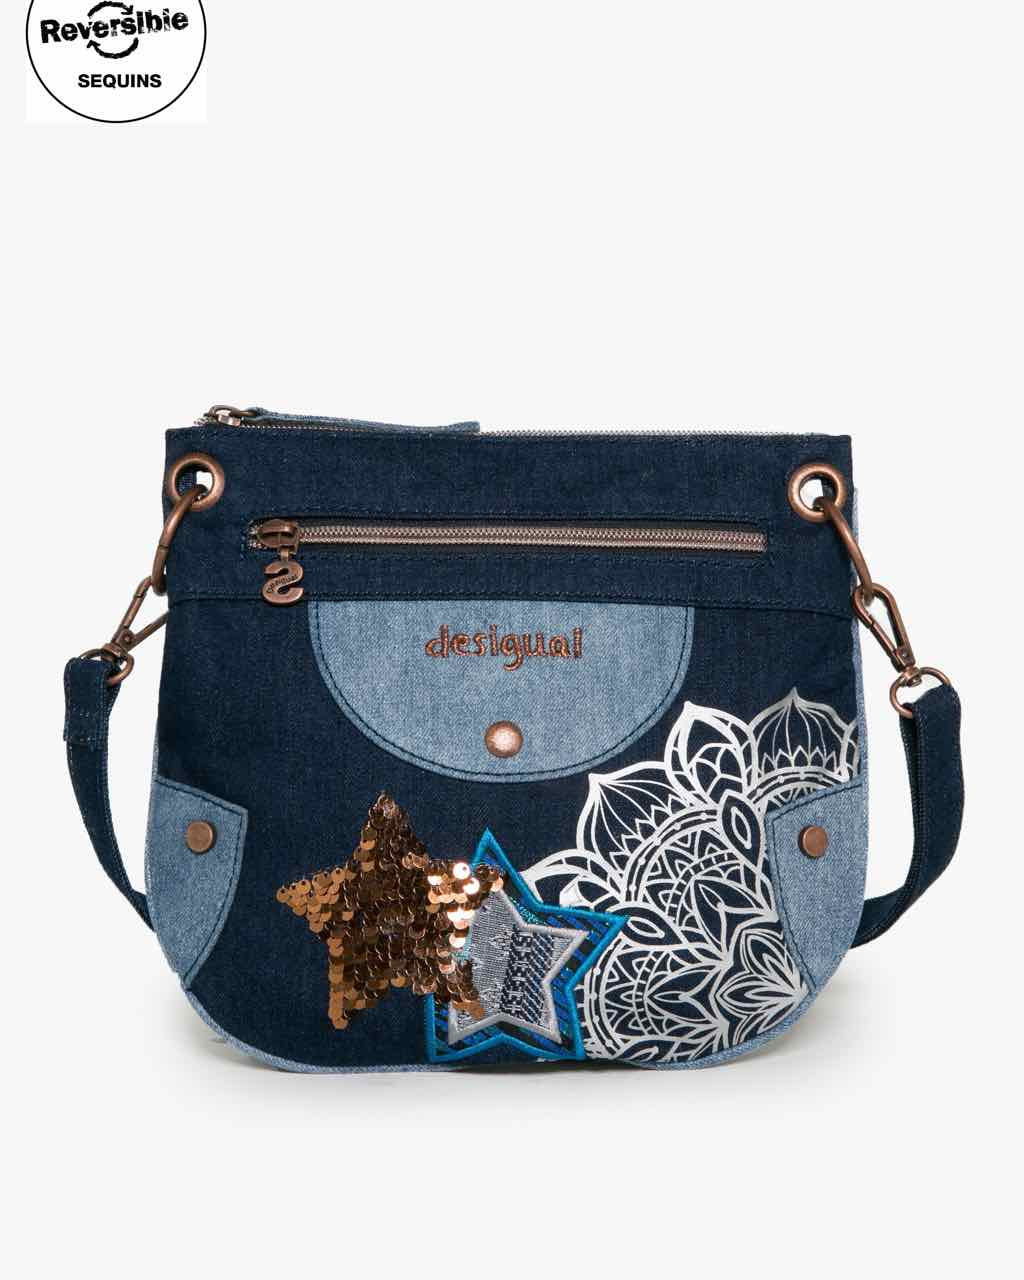 17WGXD03_5006 Desigual Girl Bag Denim Buy Online